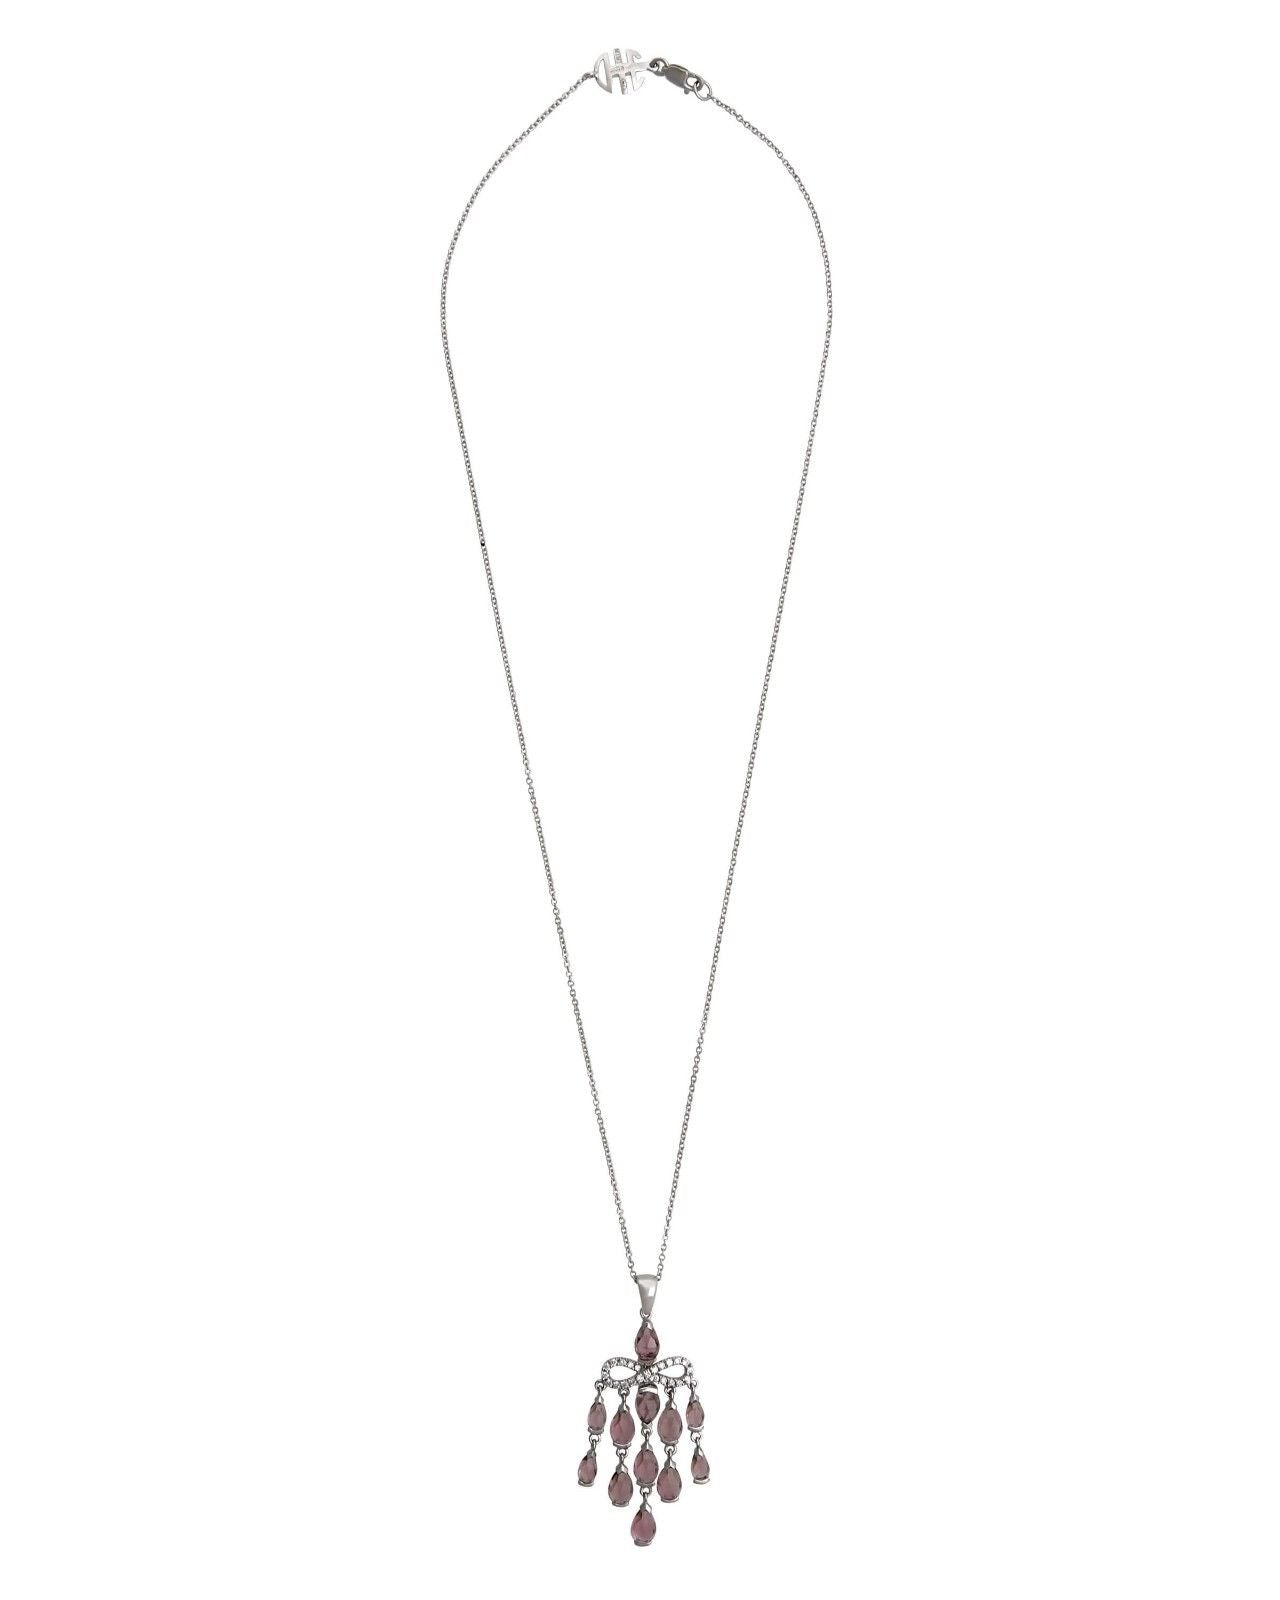 Mimi Milano Pendant In 18K White Gold, Tourmaline Diamonds P380B8UB